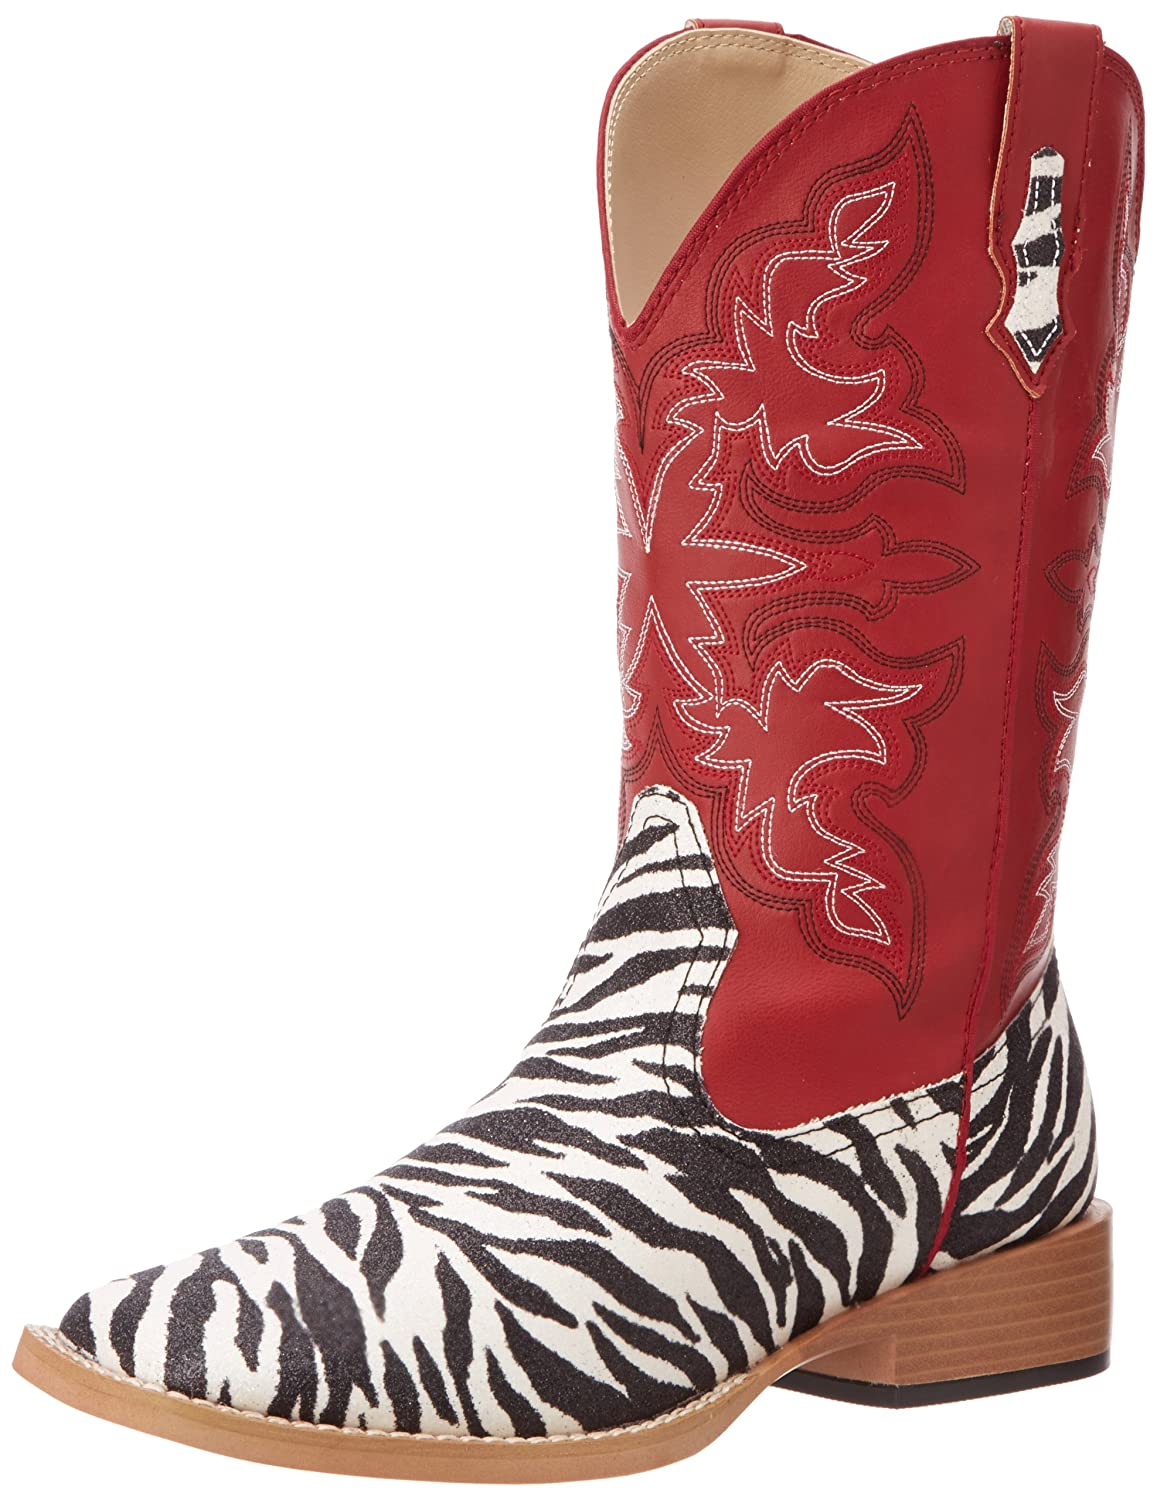 8b4c074ad78 Roper Women's Zebra Glitter Riding Boot